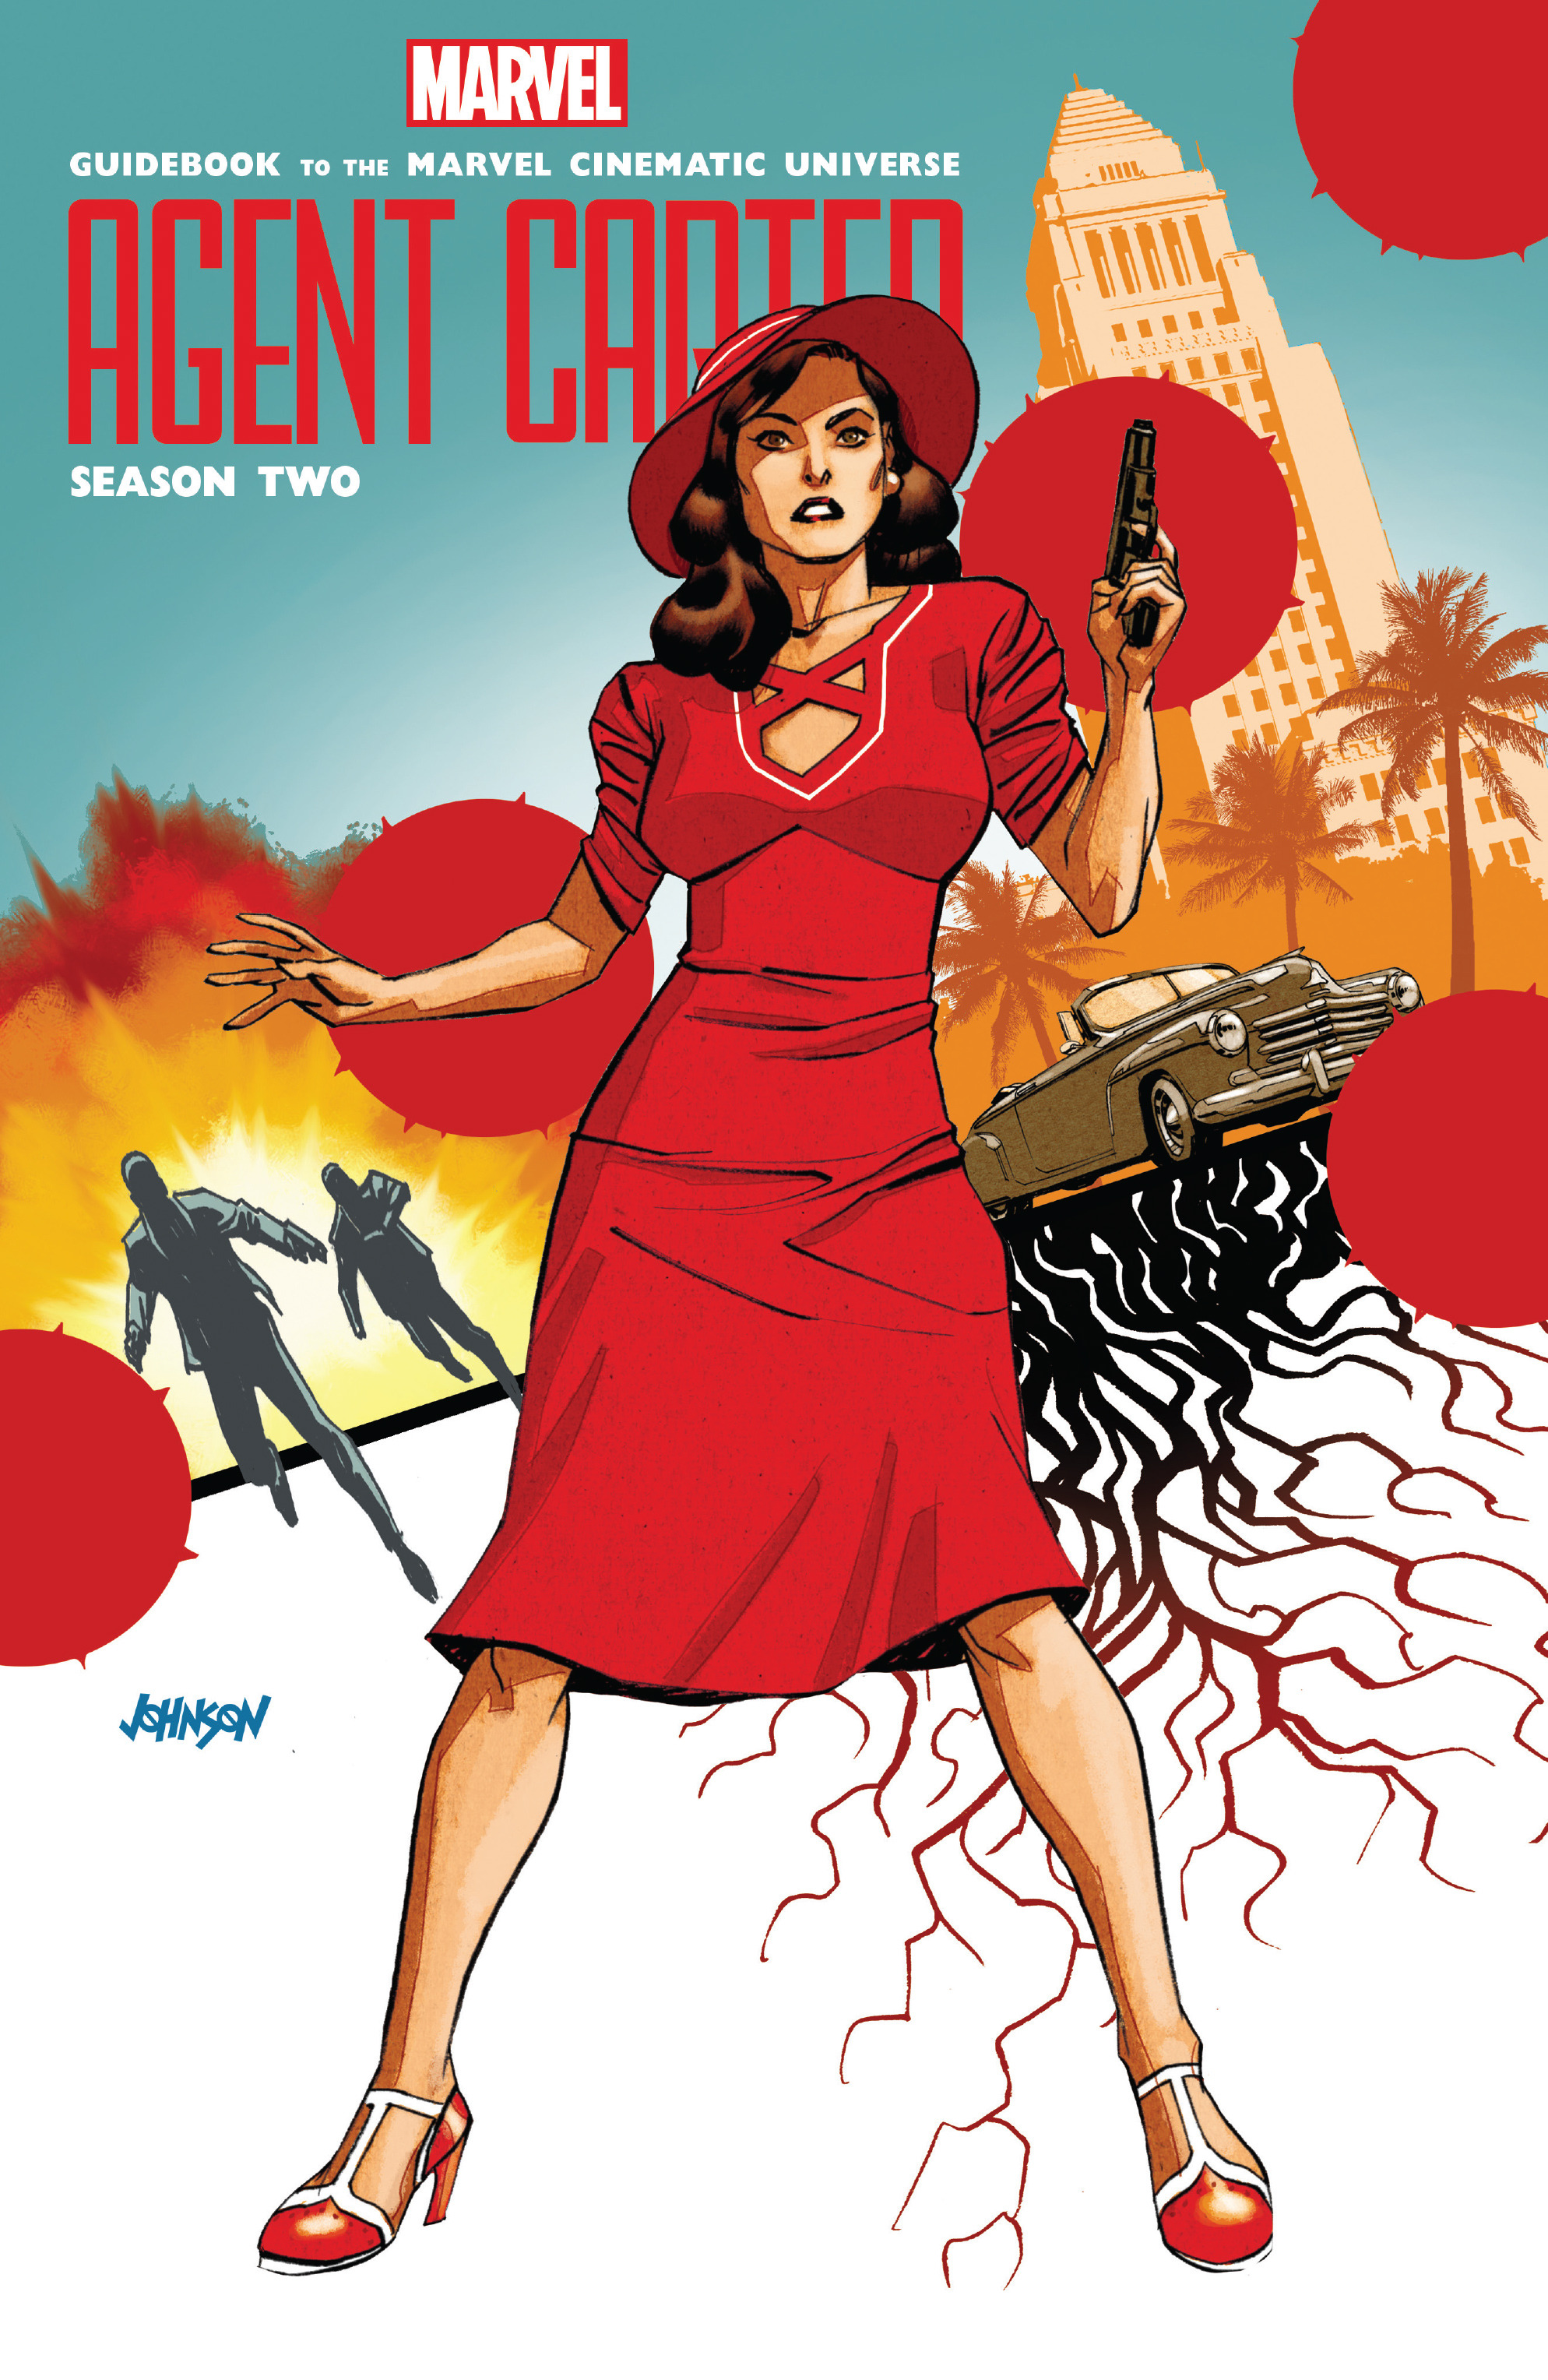 Guidebook to the Marvel Cinematic Universe - Marvels Agent Carter Season Two Full Page 1